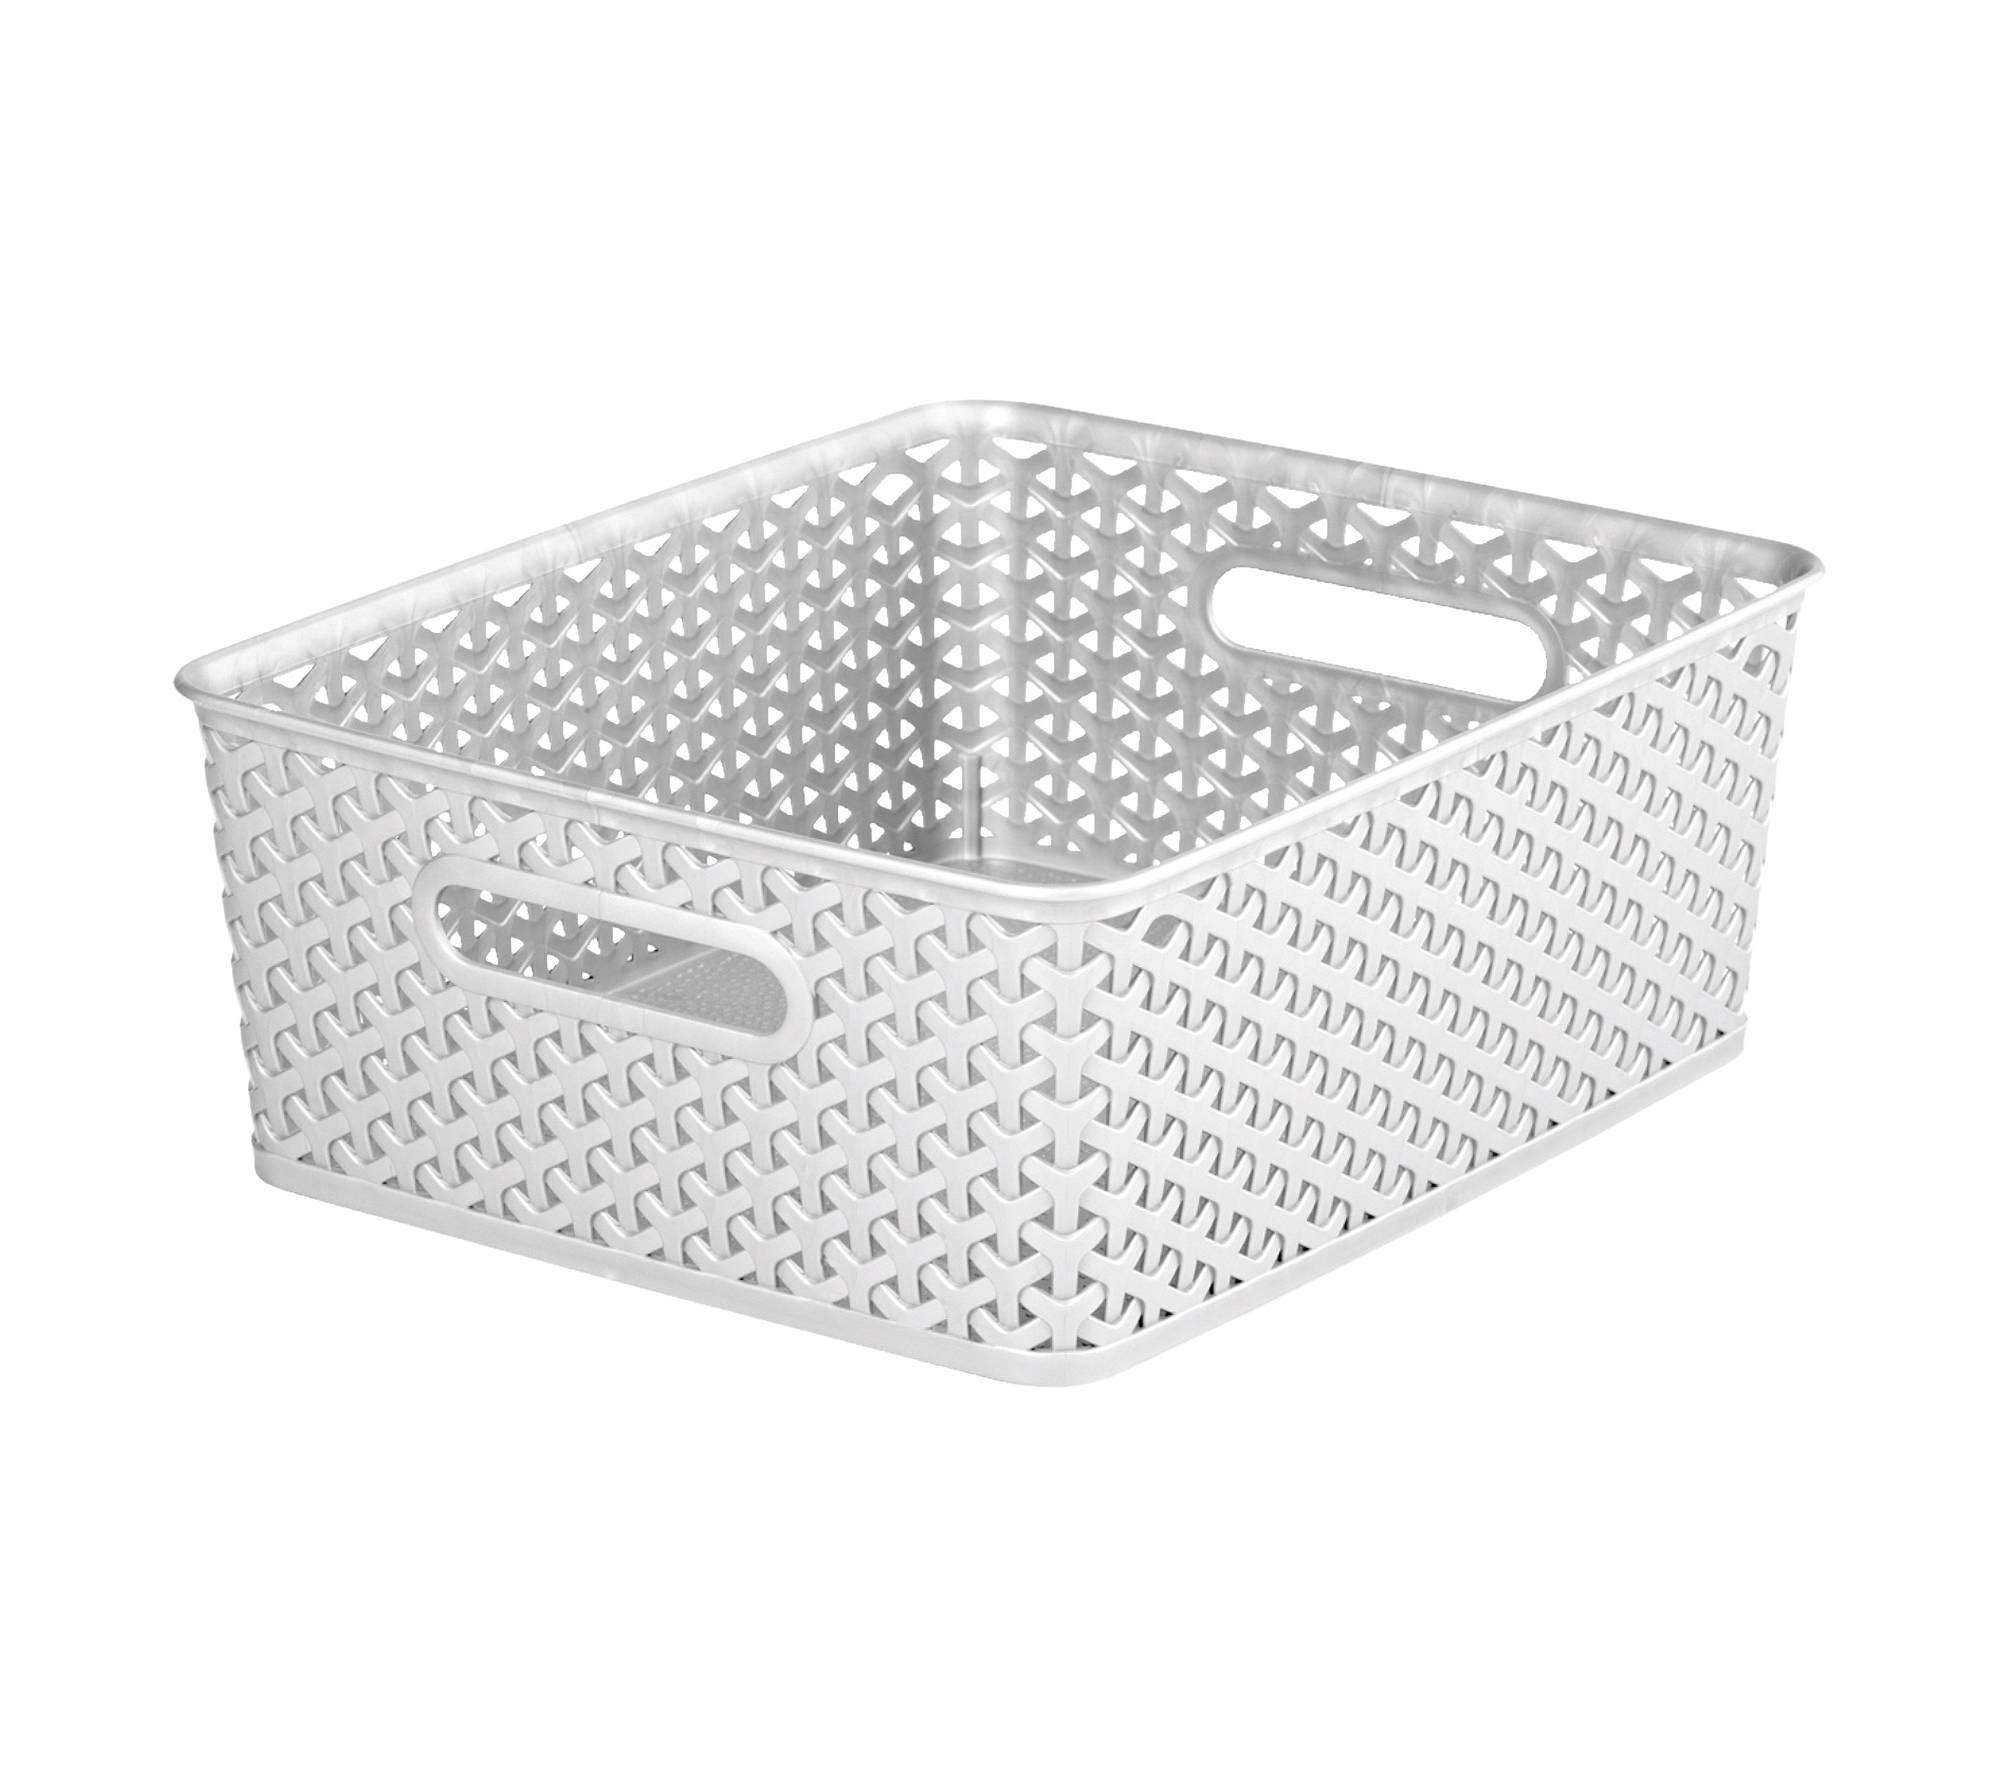 CLOCOR Square Storage Baskets,Storage Bins,Canvas Nursery Boxes,Collapsible Playroom Decor for Laundry,Shelves,Gift Basket,Home Organization Black dot